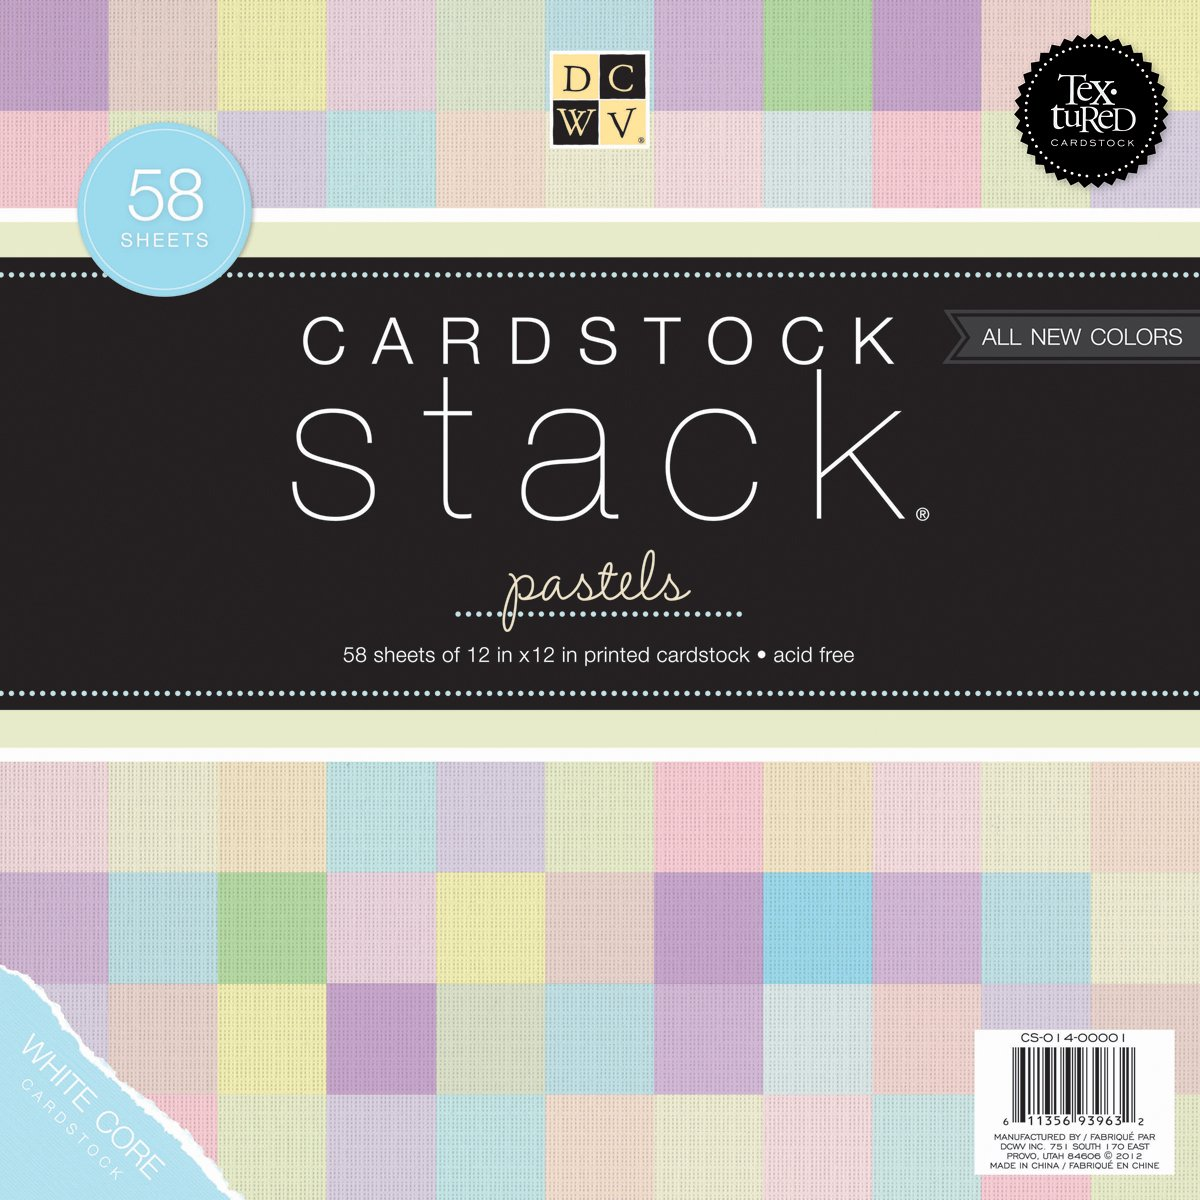 Die Cuts DCWV Cardstock Stack, Textured Pastels, 58 Sheets, 12 x 12 inches DIECUTS WITH A VIEW CS014001